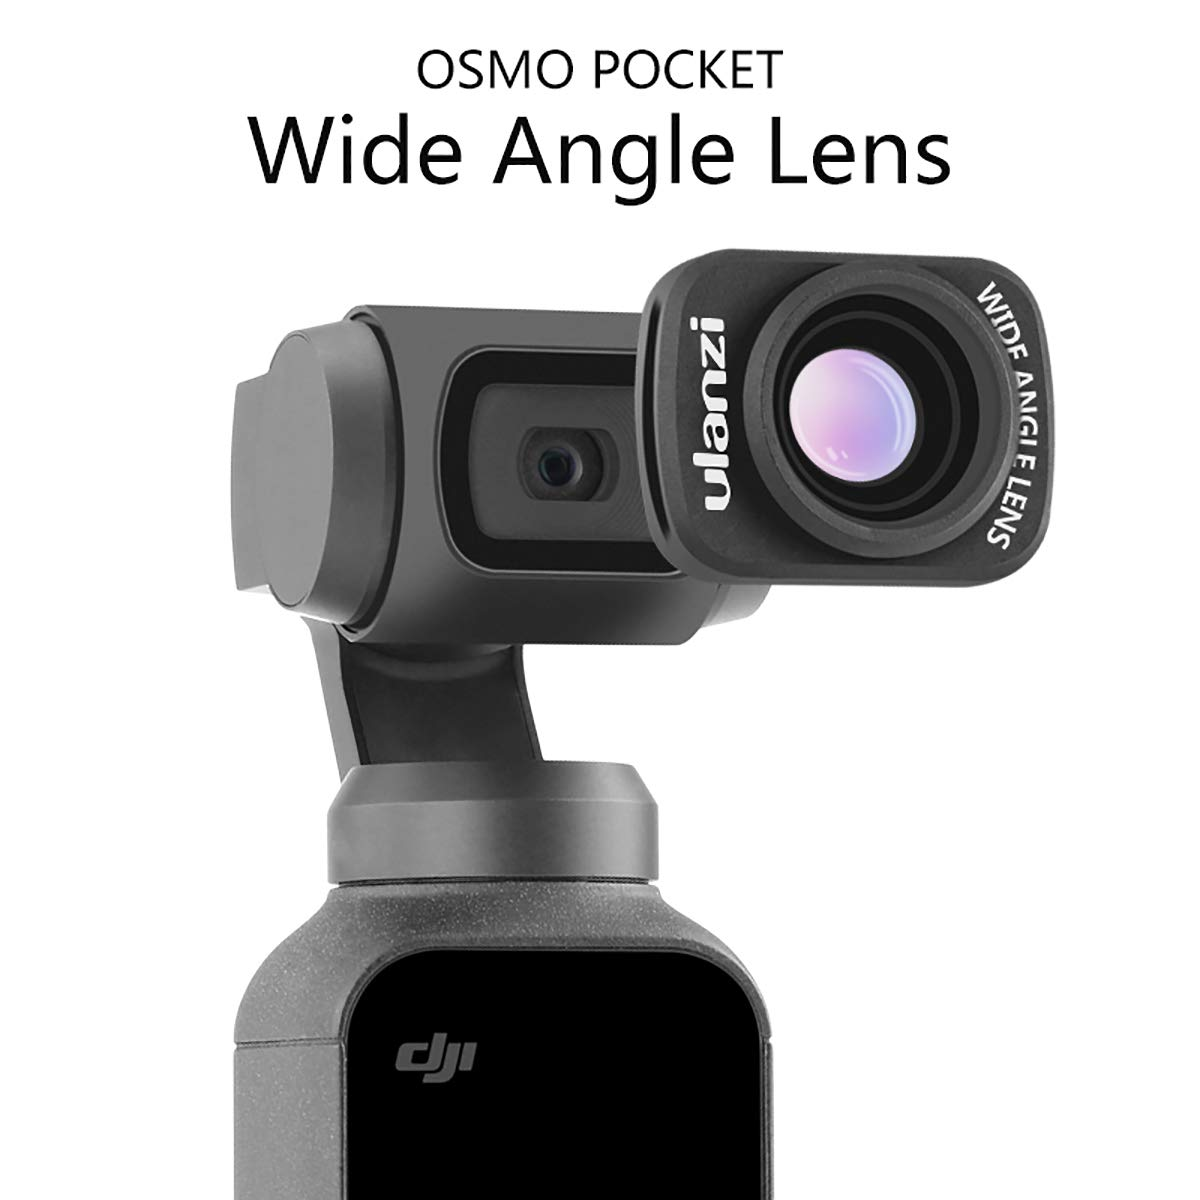 ULANZI OP-5 OSMO Pocket Wide Angle Lens Magnetic Structure for DJI OSMO Pocket Camera Handheld Gimbal Stabilizer Accessories Wide-Angle Camera Lens by ULANZI